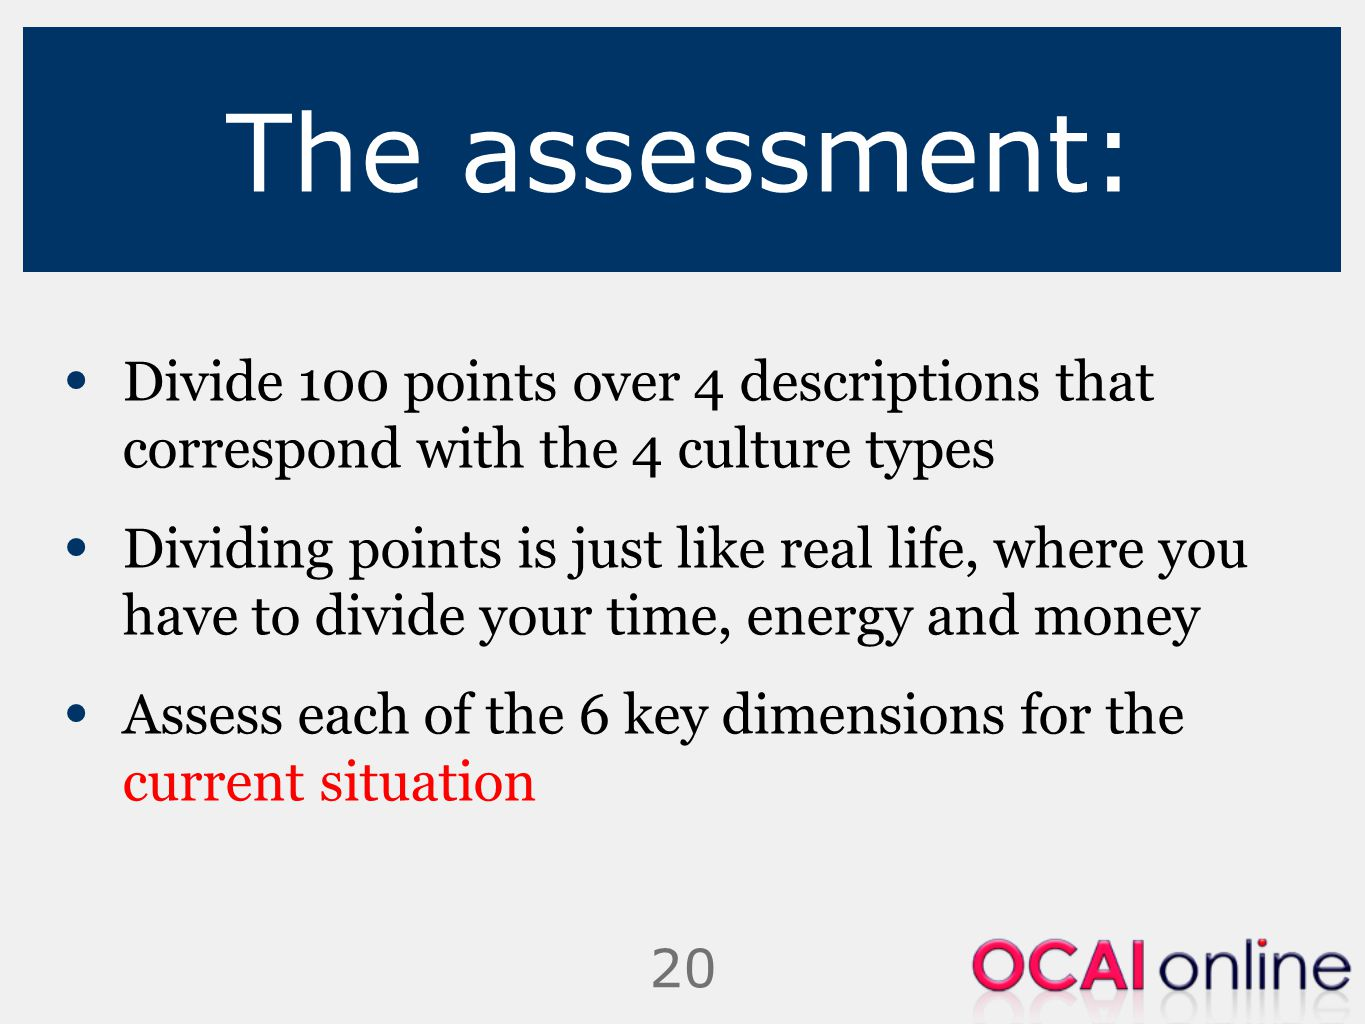 The assessment: Divide 100 points over 4 descriptions that correspond with the 4 culture types.